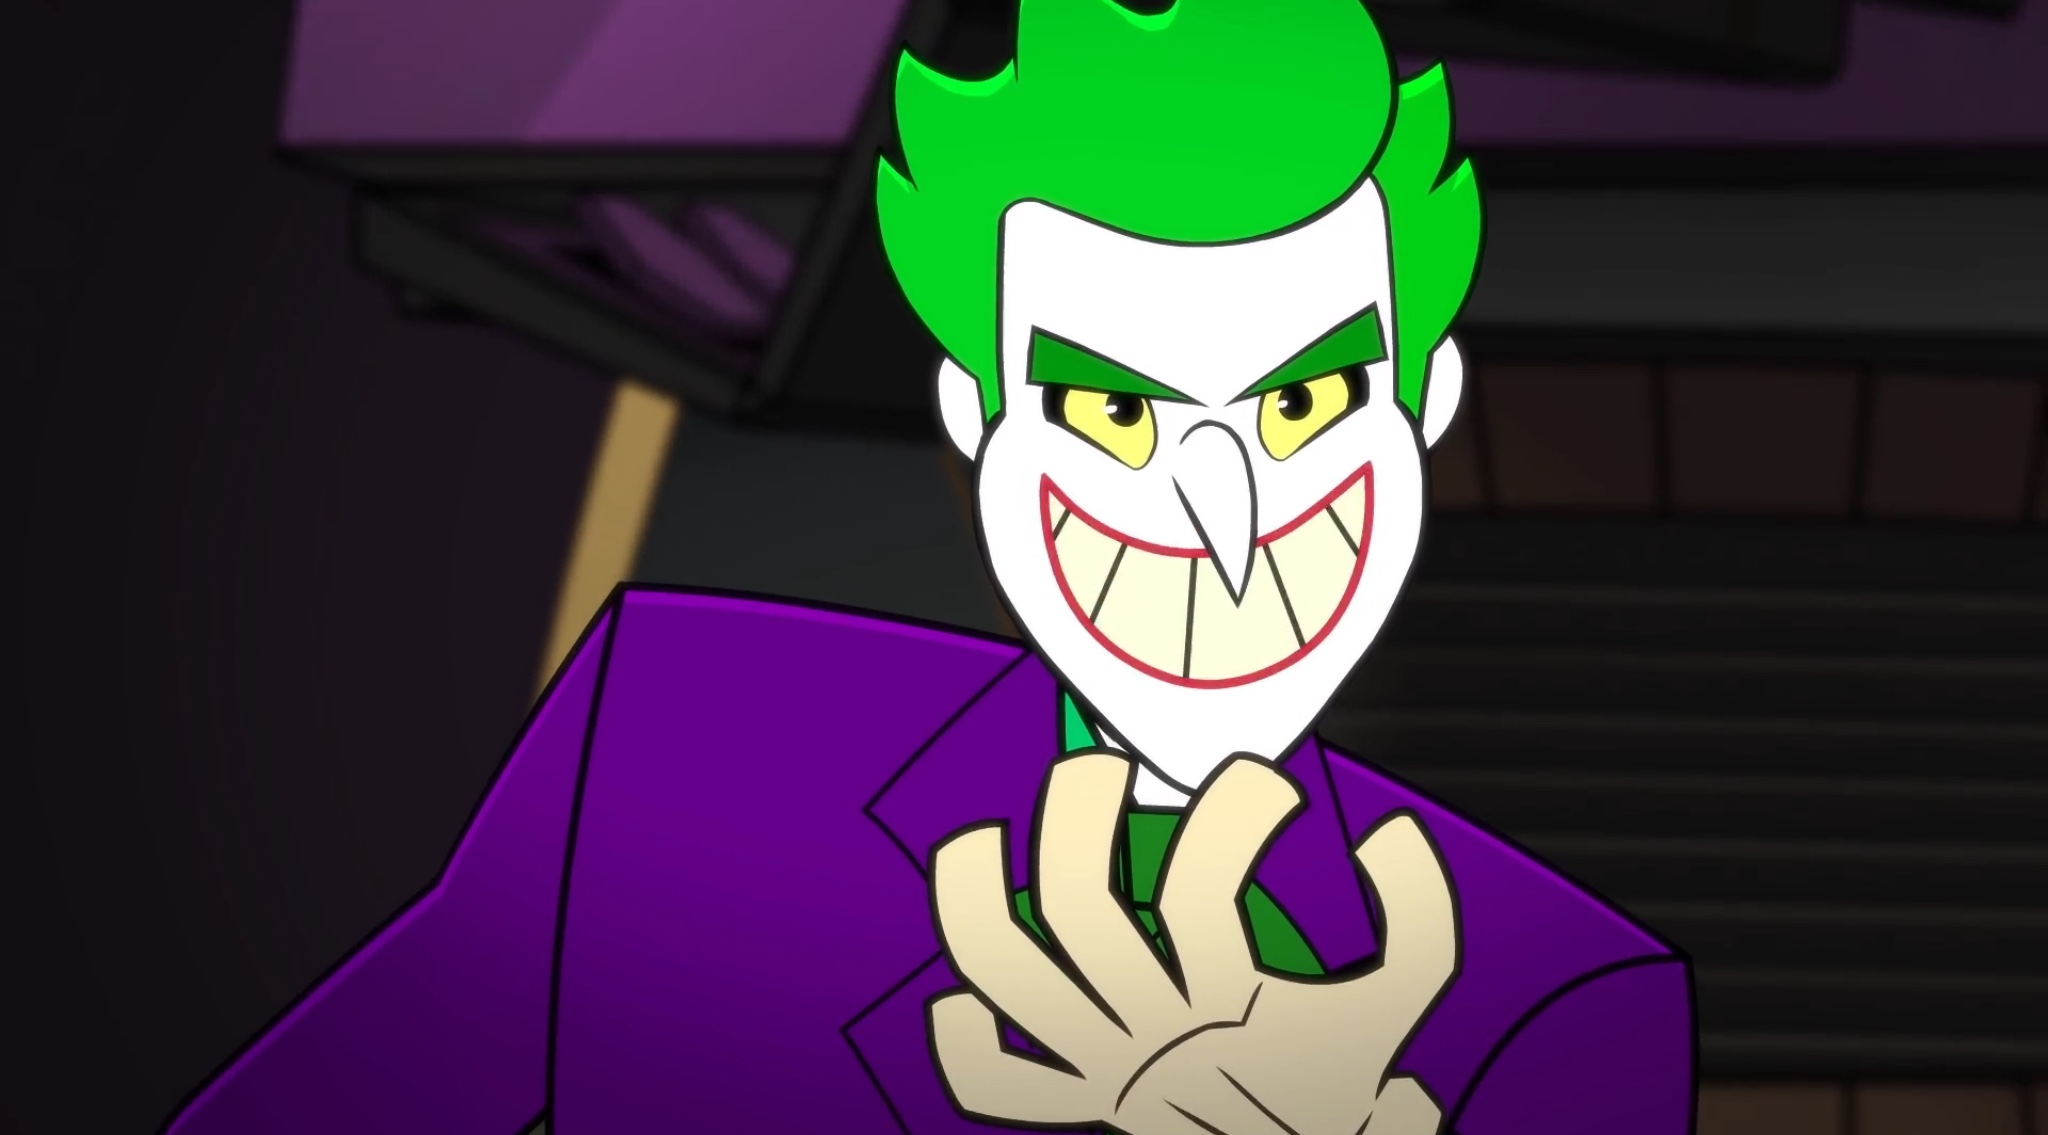 Joker (DC Super Friends Web Series)